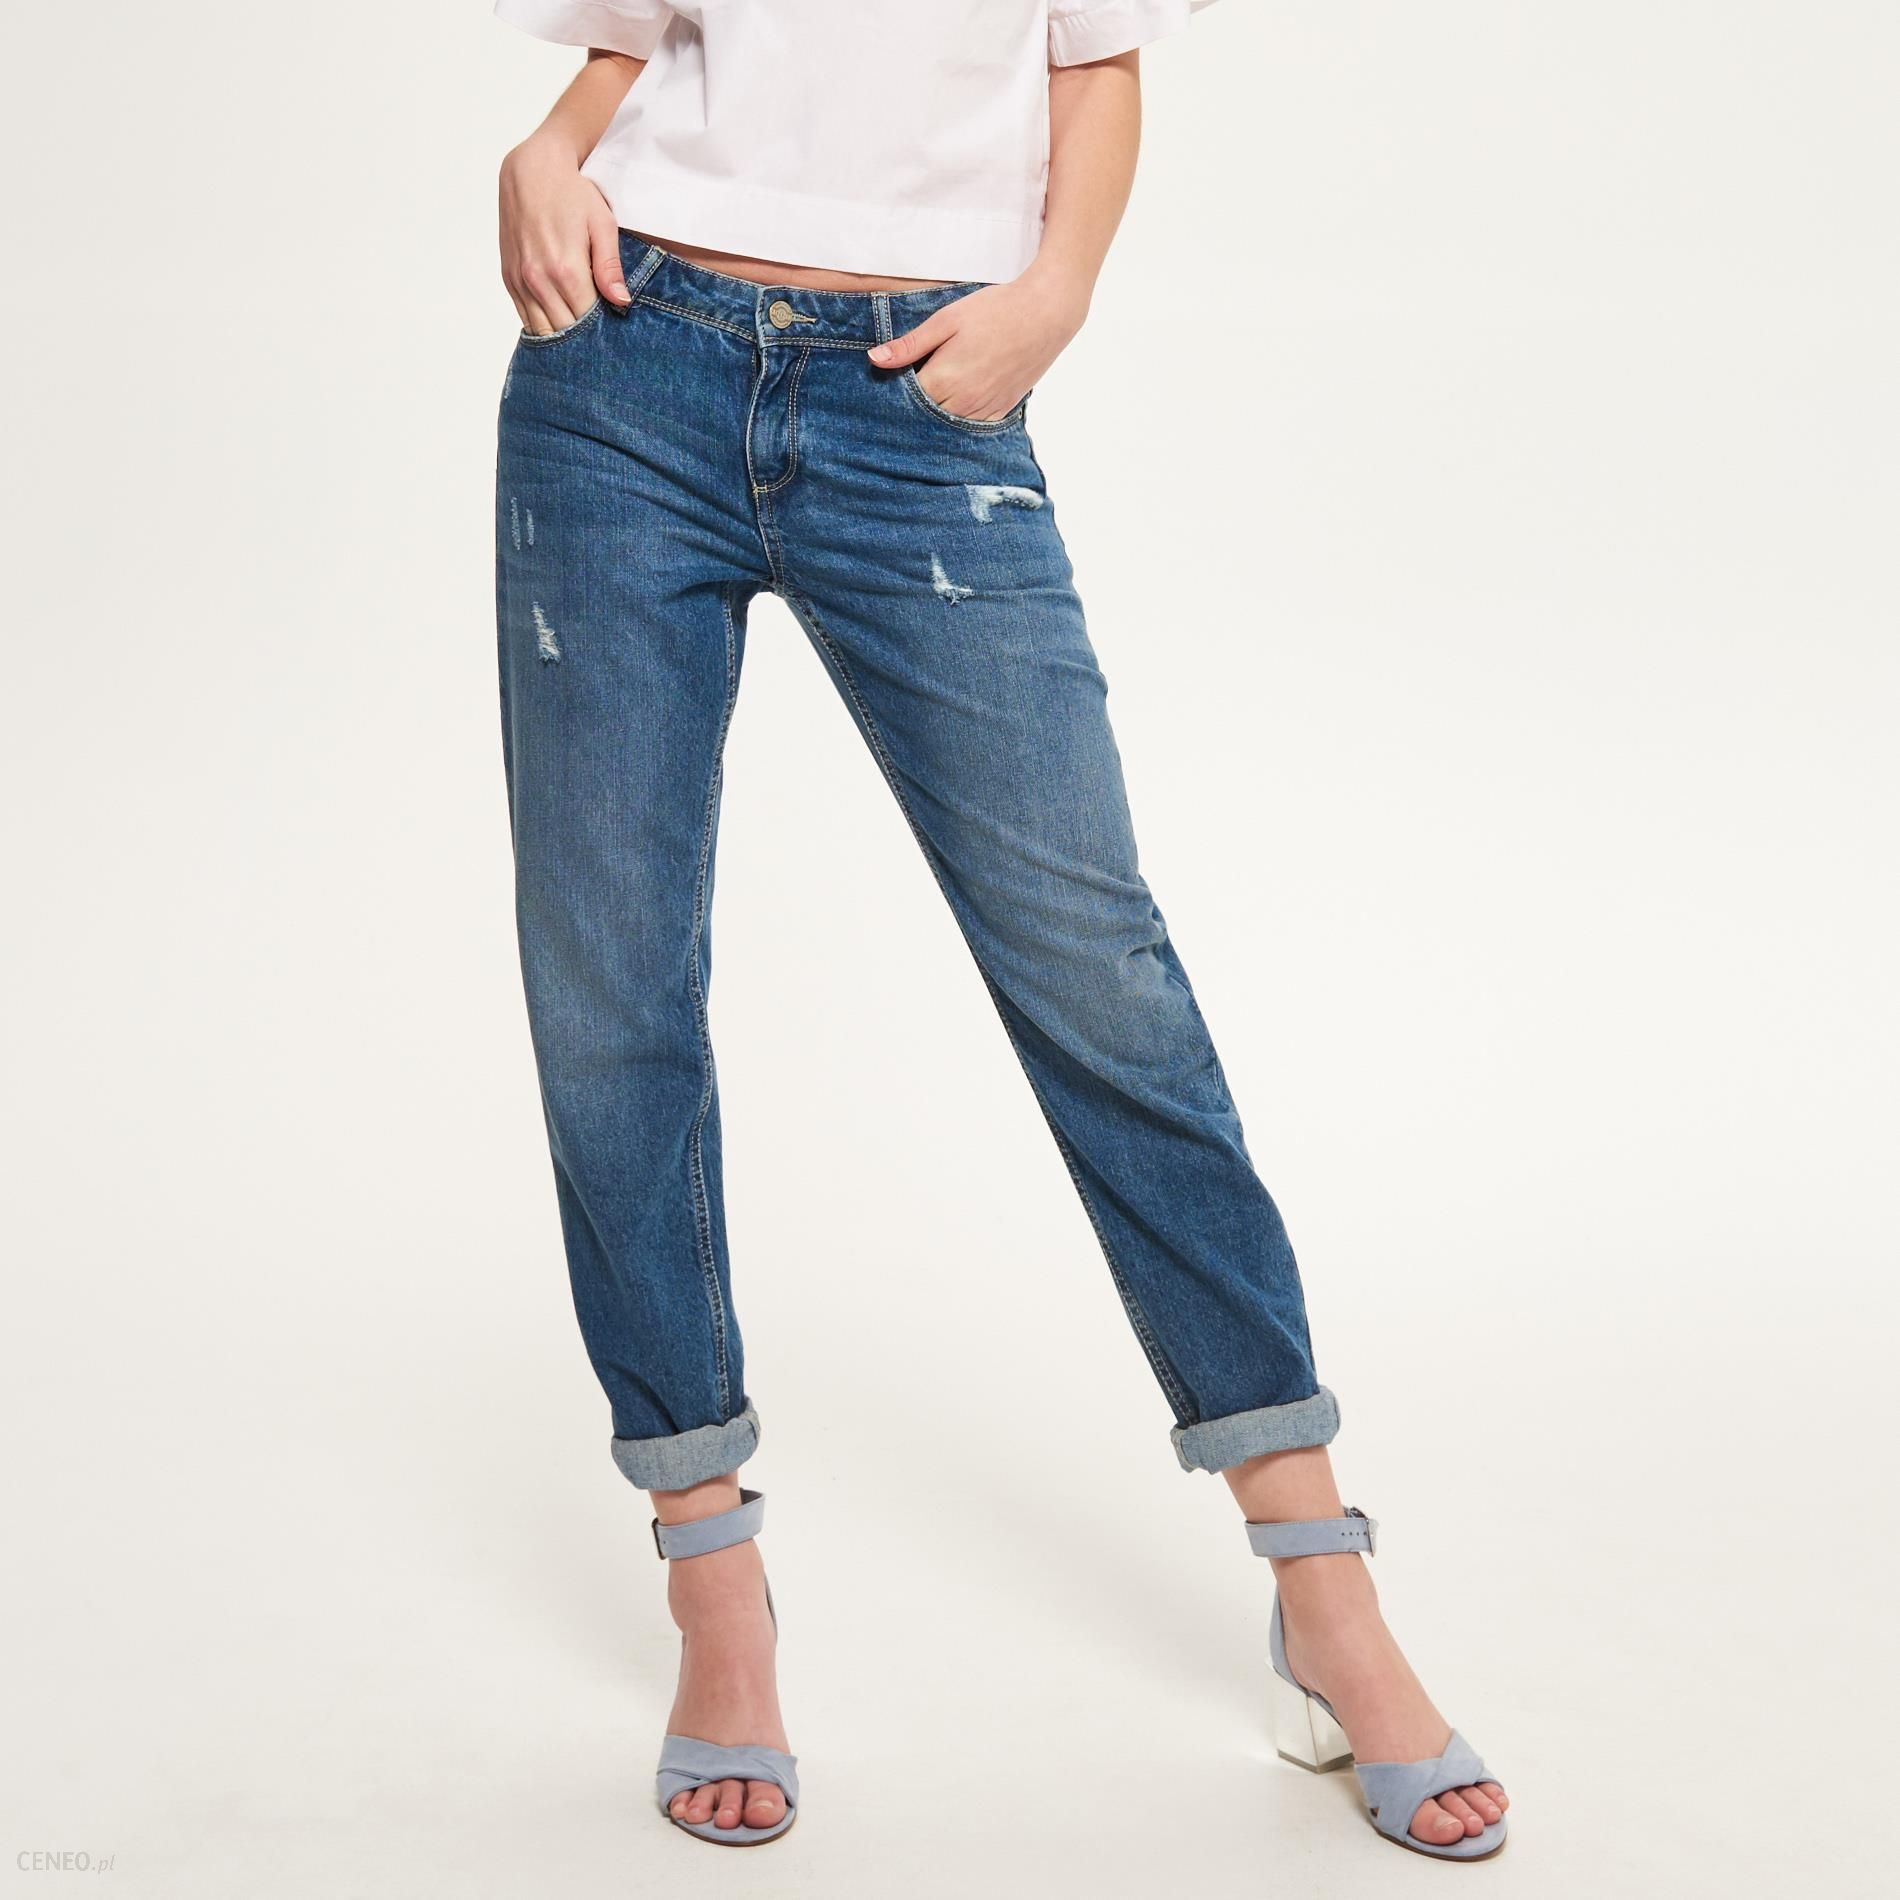 Find a great selection of boyfriend jeans for women at venchik.ml Shop top brands like NYDJ, AG, Levi's, Kut from the Kloth more. Free shipping & returns.